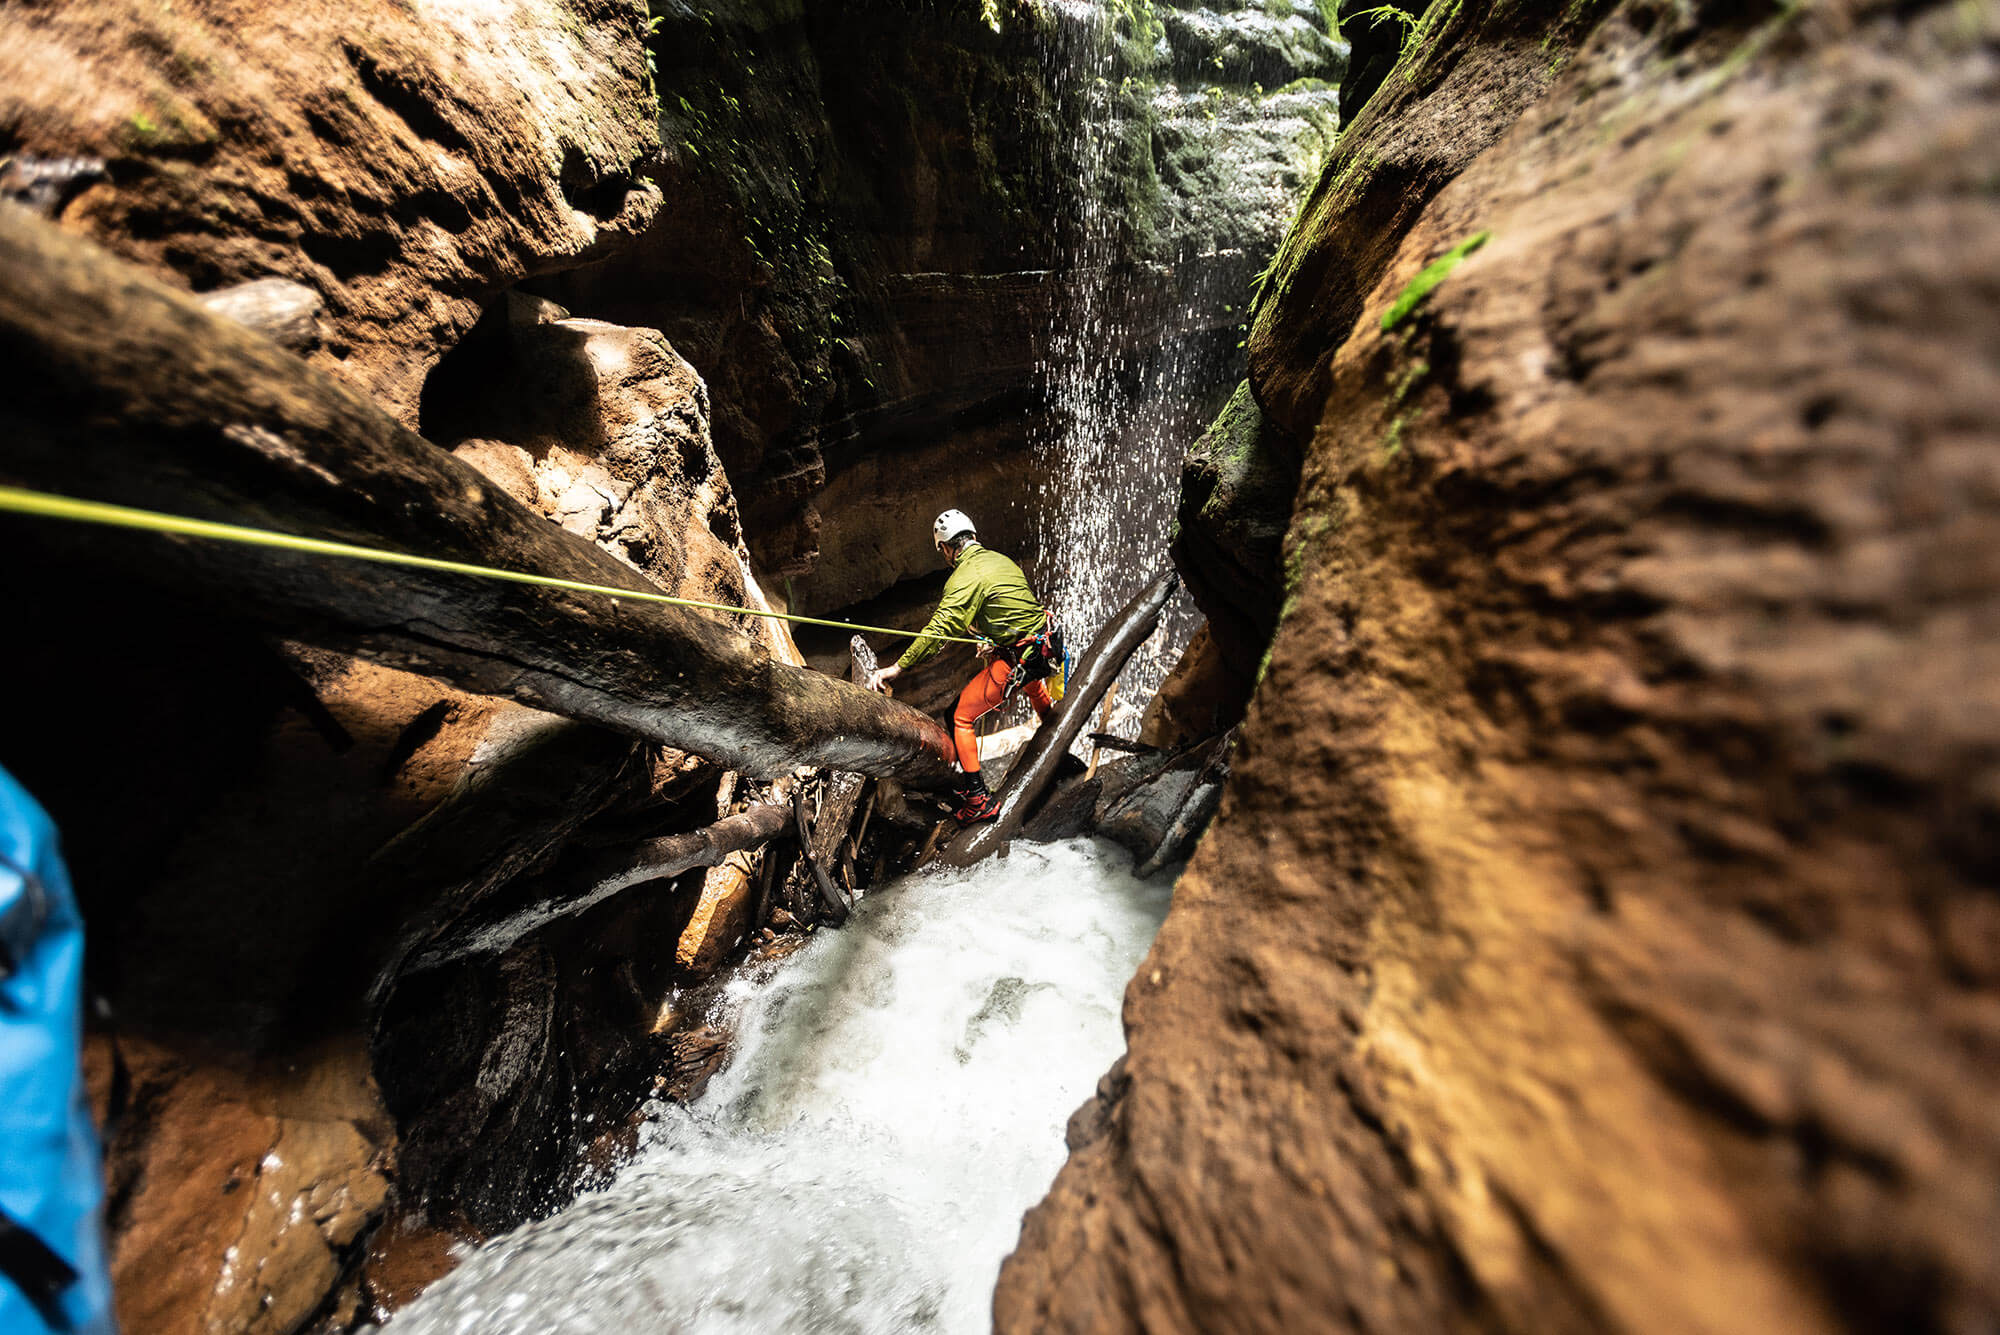 Canyoning in a narrow section of Tukad Dalam in Bali, Indonesia. Photo © Supersmarindo. Re:belay Canyoning.